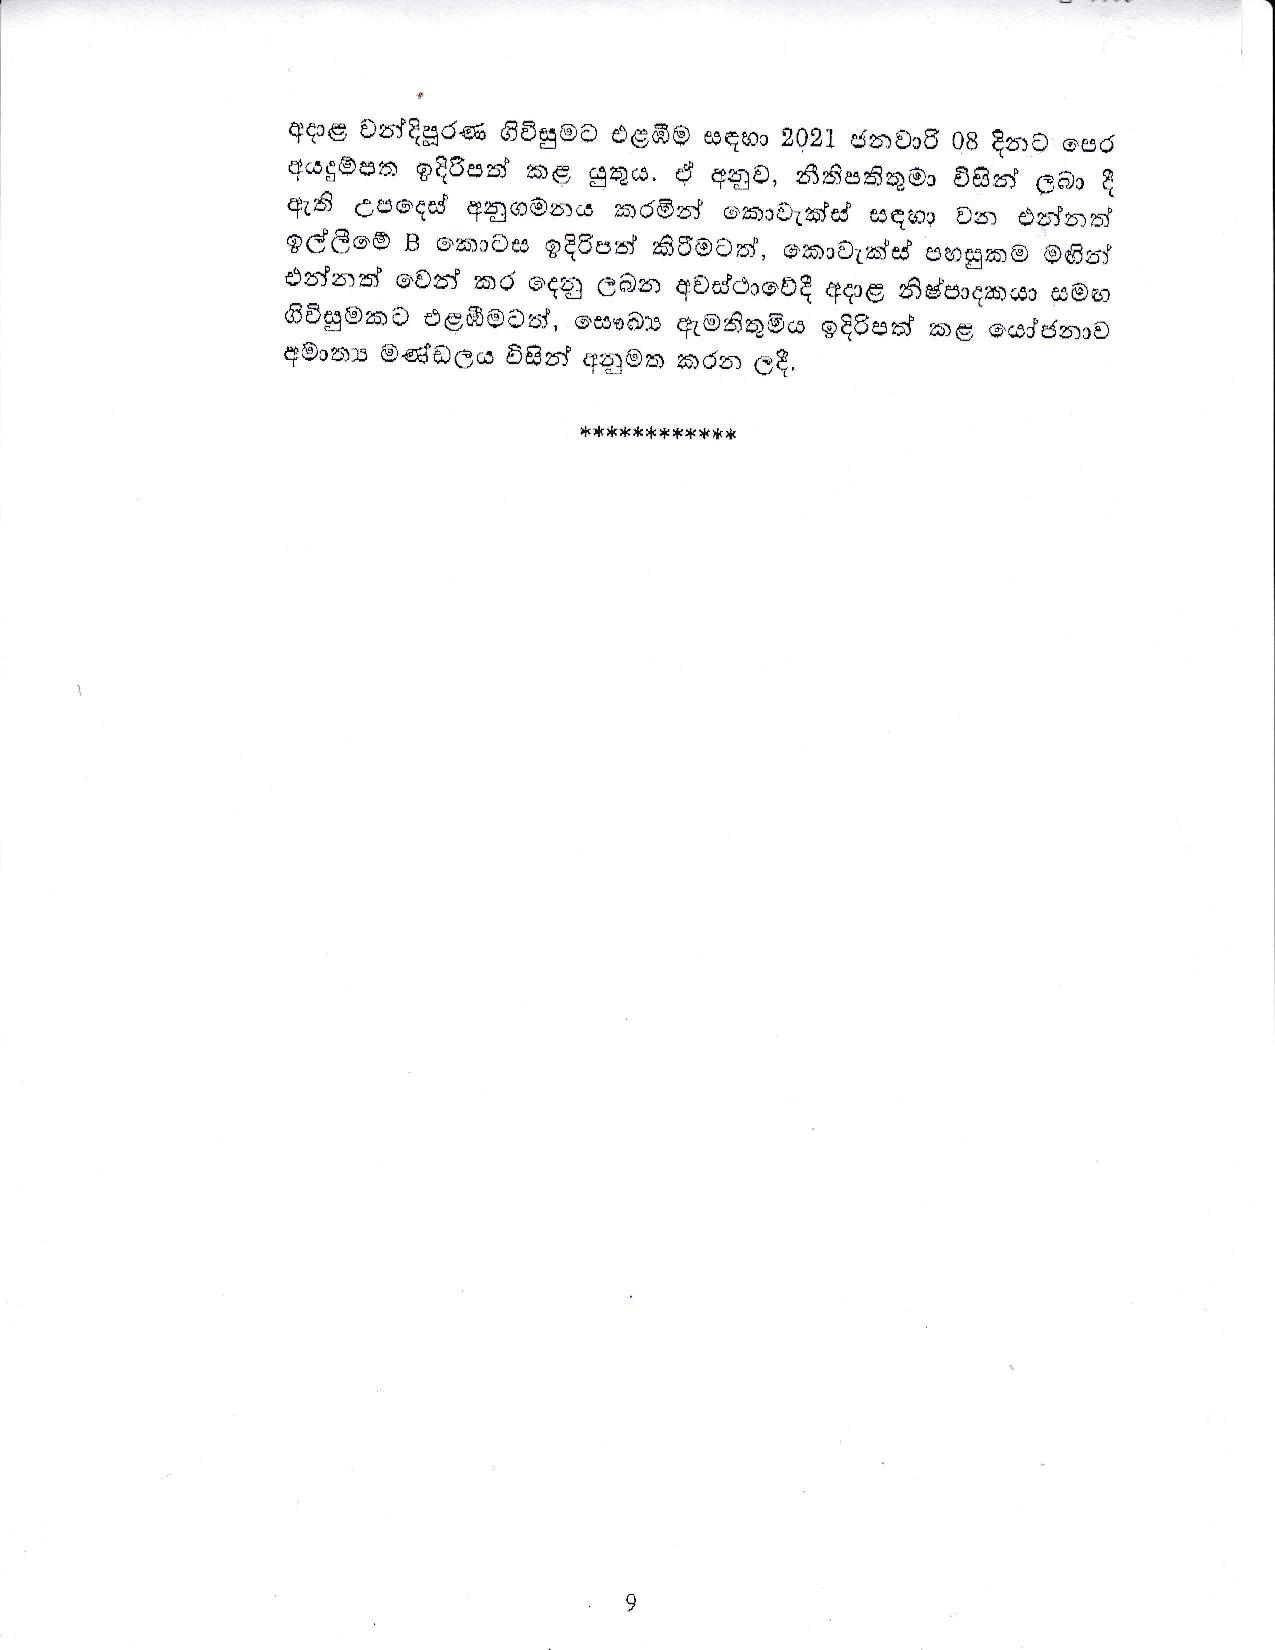 Cabinet Decision on 04.01.2021 page 009